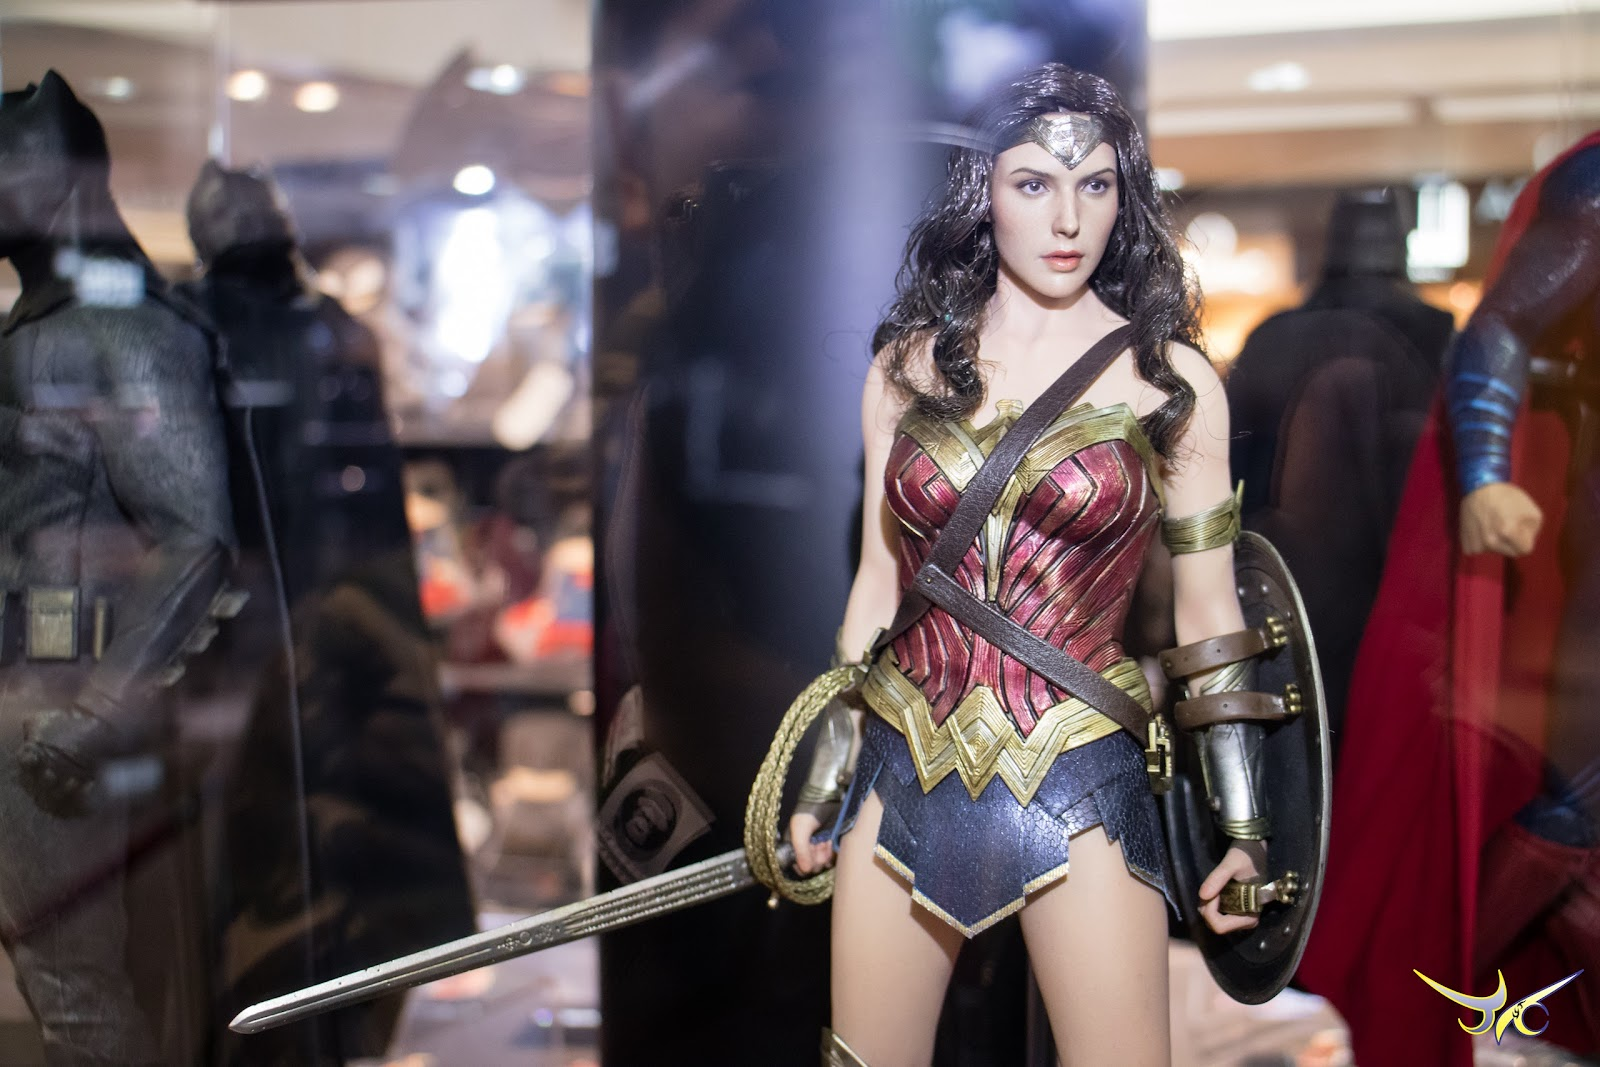 Spada Wonder Woman Jk 39s Photos Games And Toys Studio 電影玩具 Hot Toysbatman